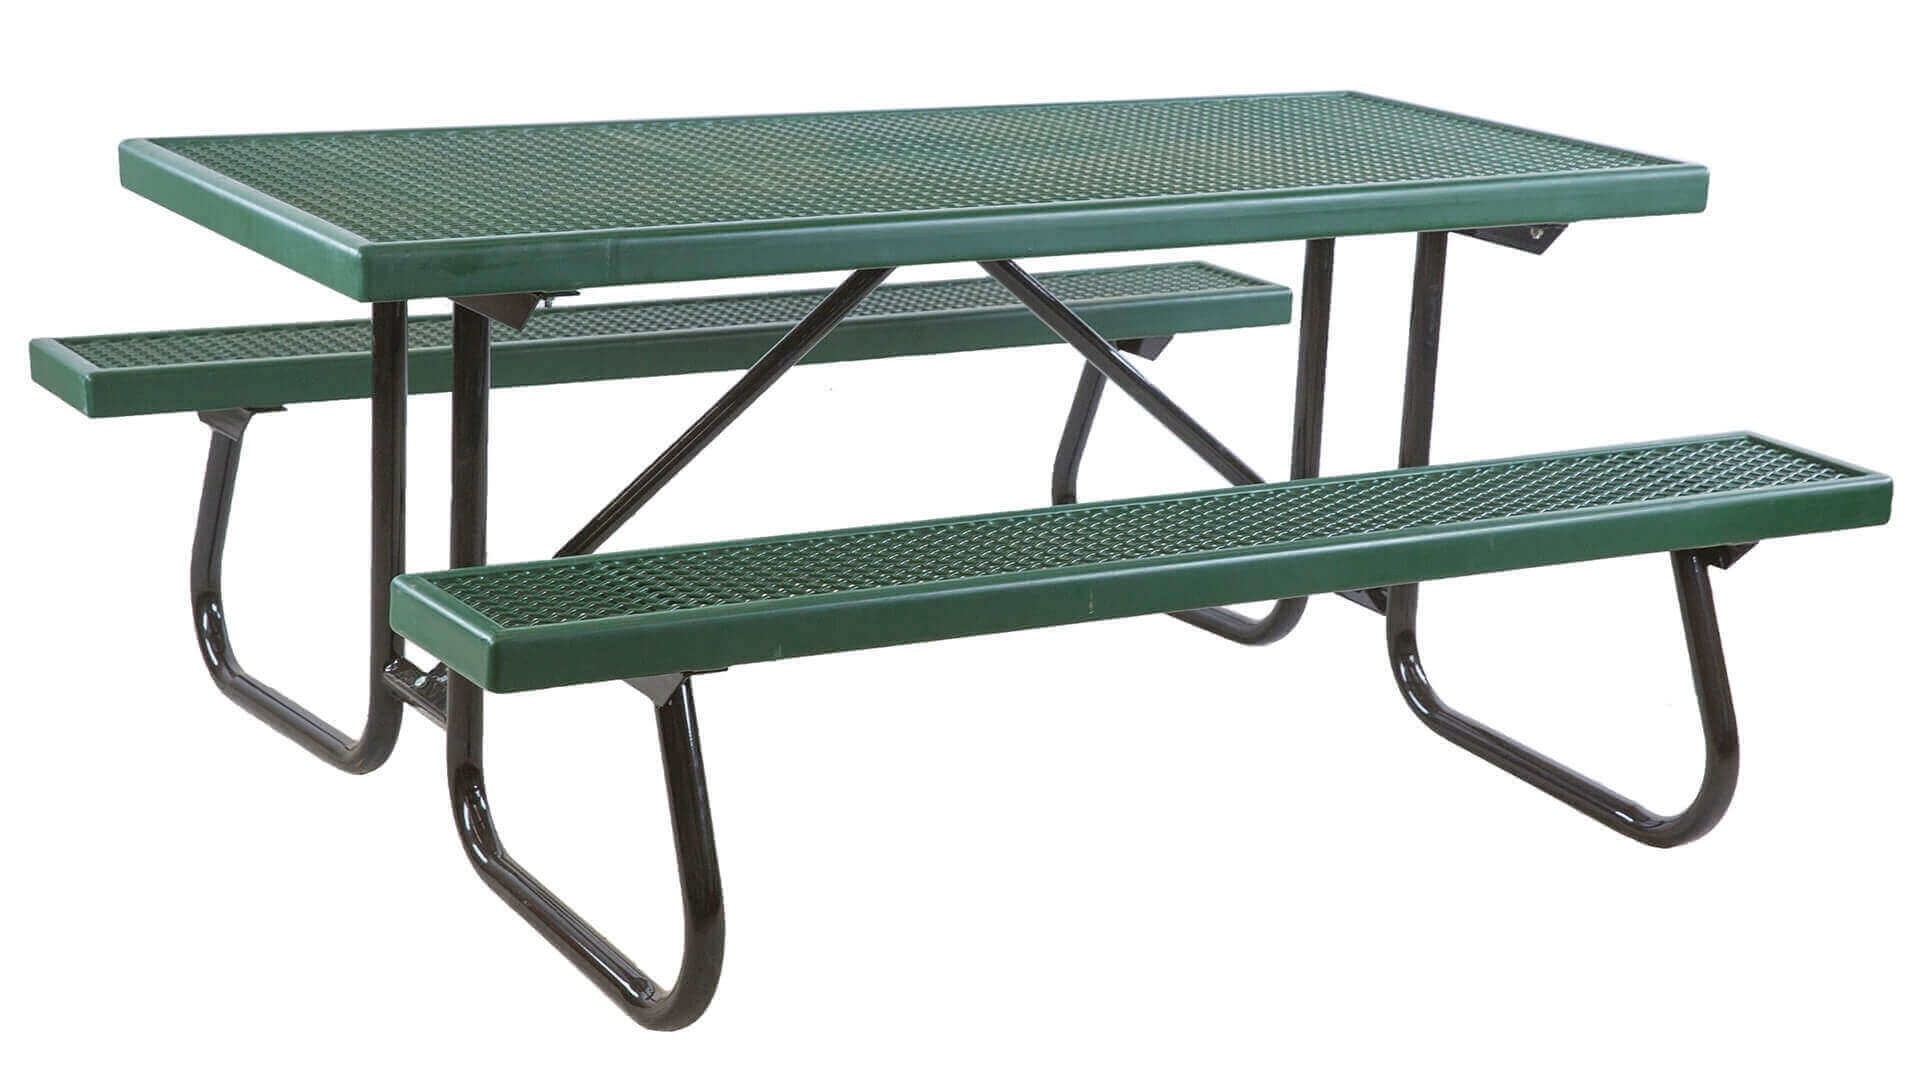 6 Ft Plastisol Coated Metal Picnic Table With Galvanized